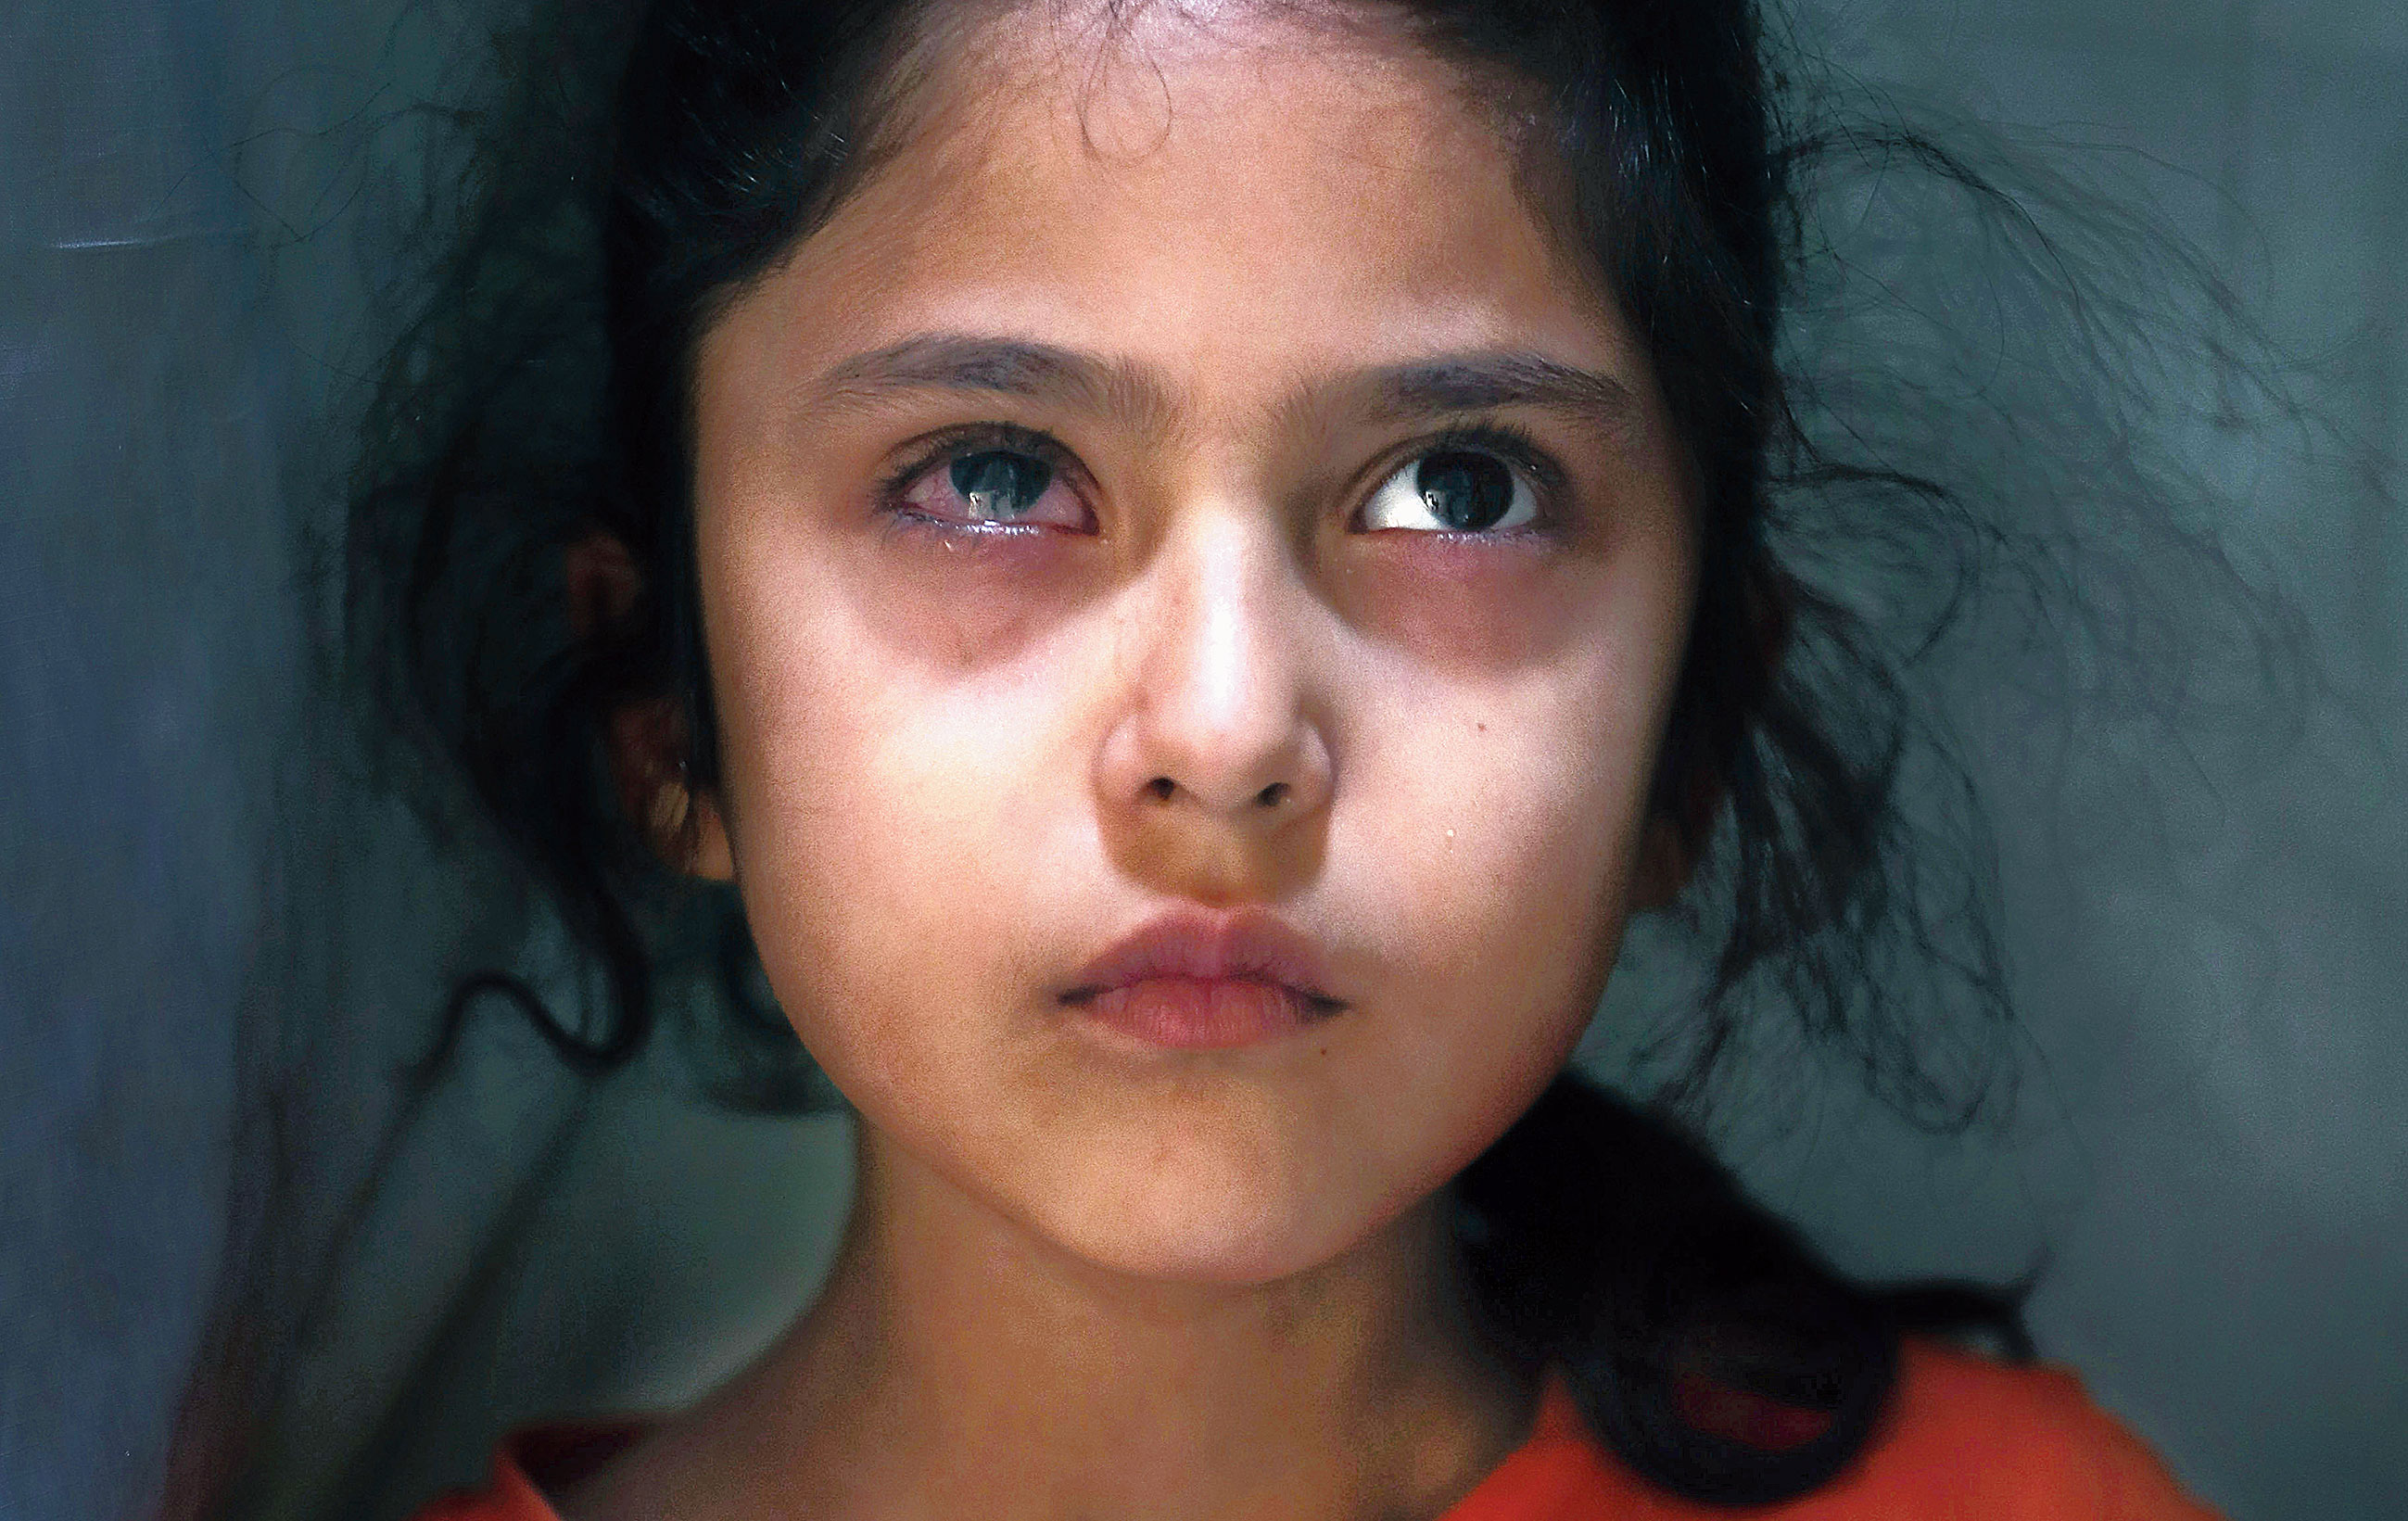 This photograph, taken on September 17, shows six-year-old Muneefa Nazir standing outside her home in Srinagar. AP had reported, quoting her uncle Farooq Ahmed Wani, that Muneefa had been hit in the right eye by a marble shot from a sling, allegedly by a paramilitary soldier, on August 12.